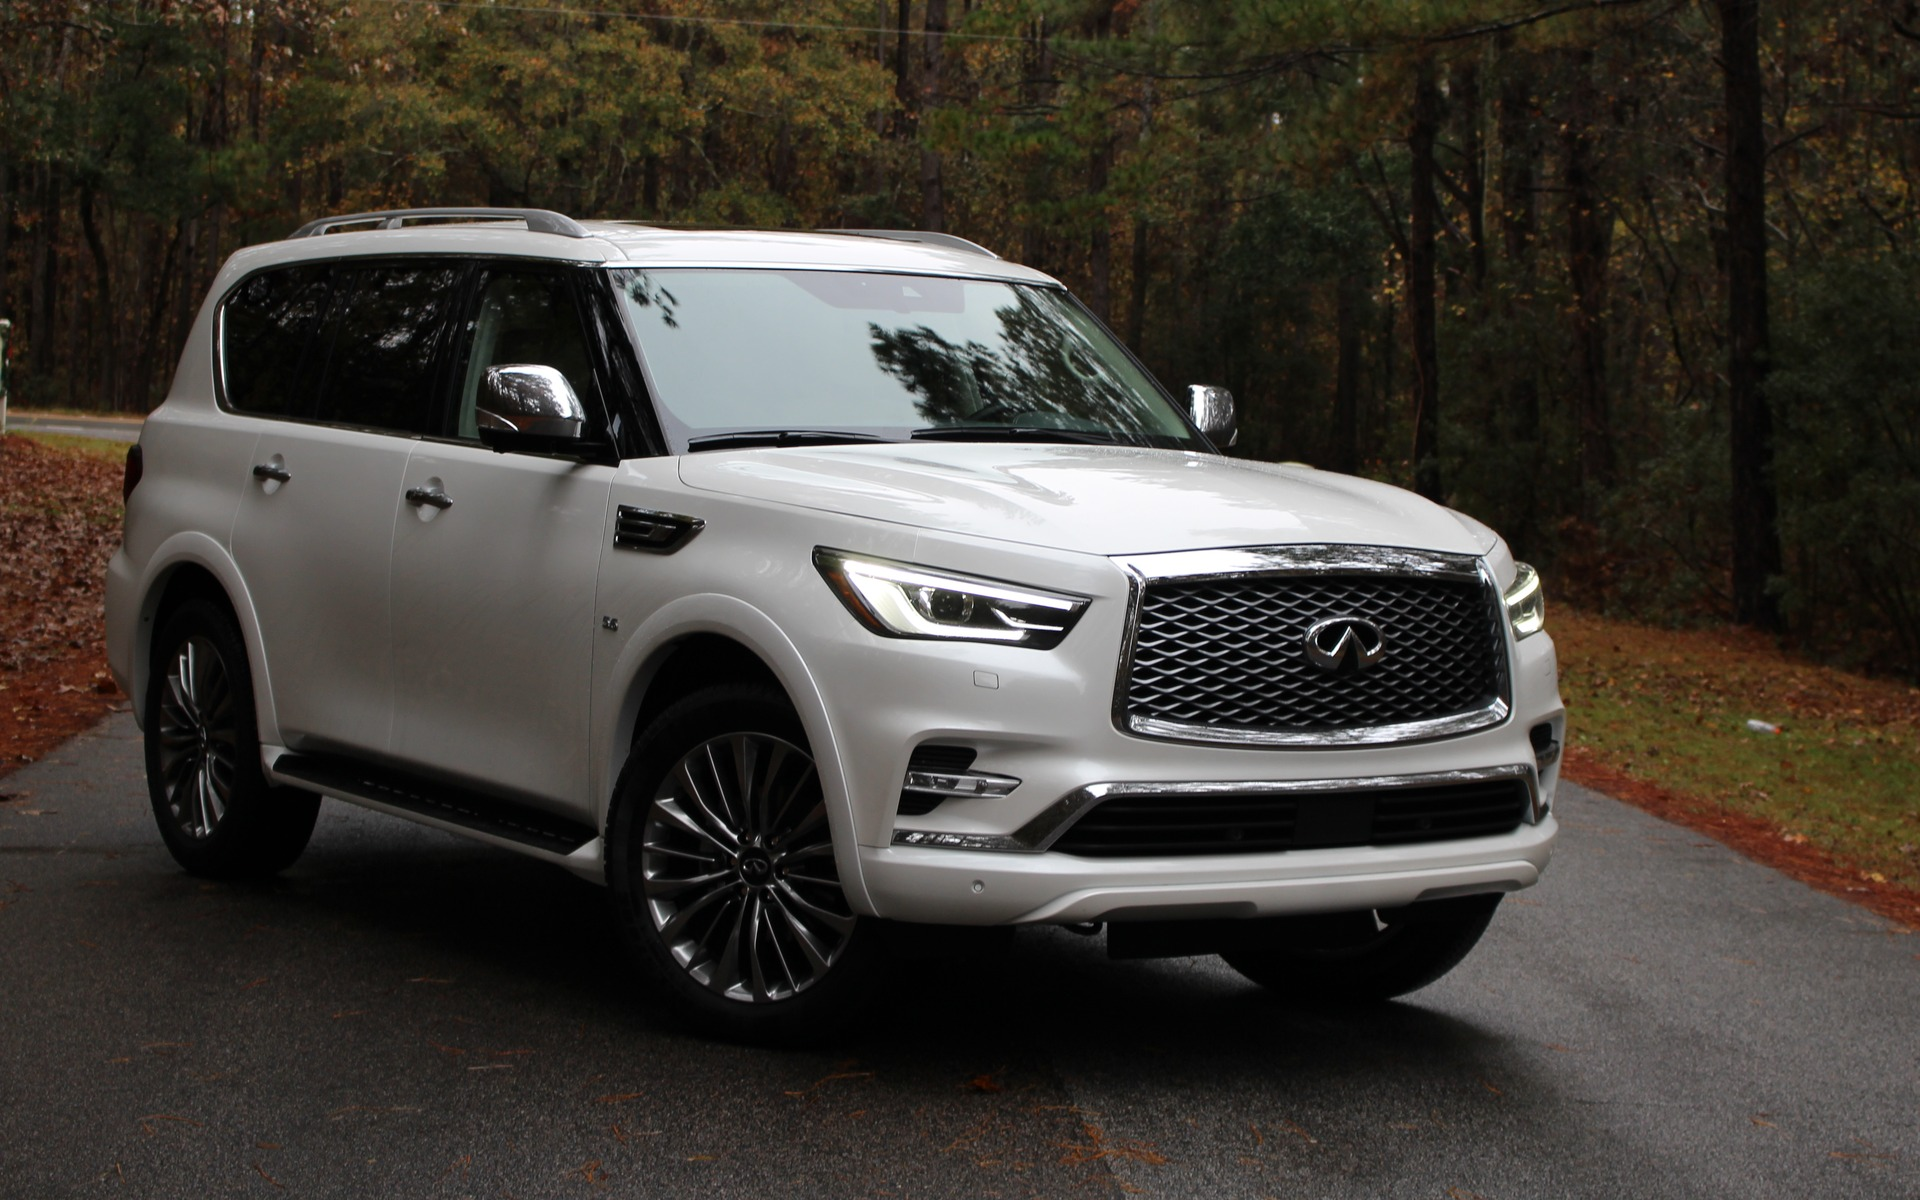 2018 infiniti qx80 sweetening the deal the car guide. Black Bedroom Furniture Sets. Home Design Ideas